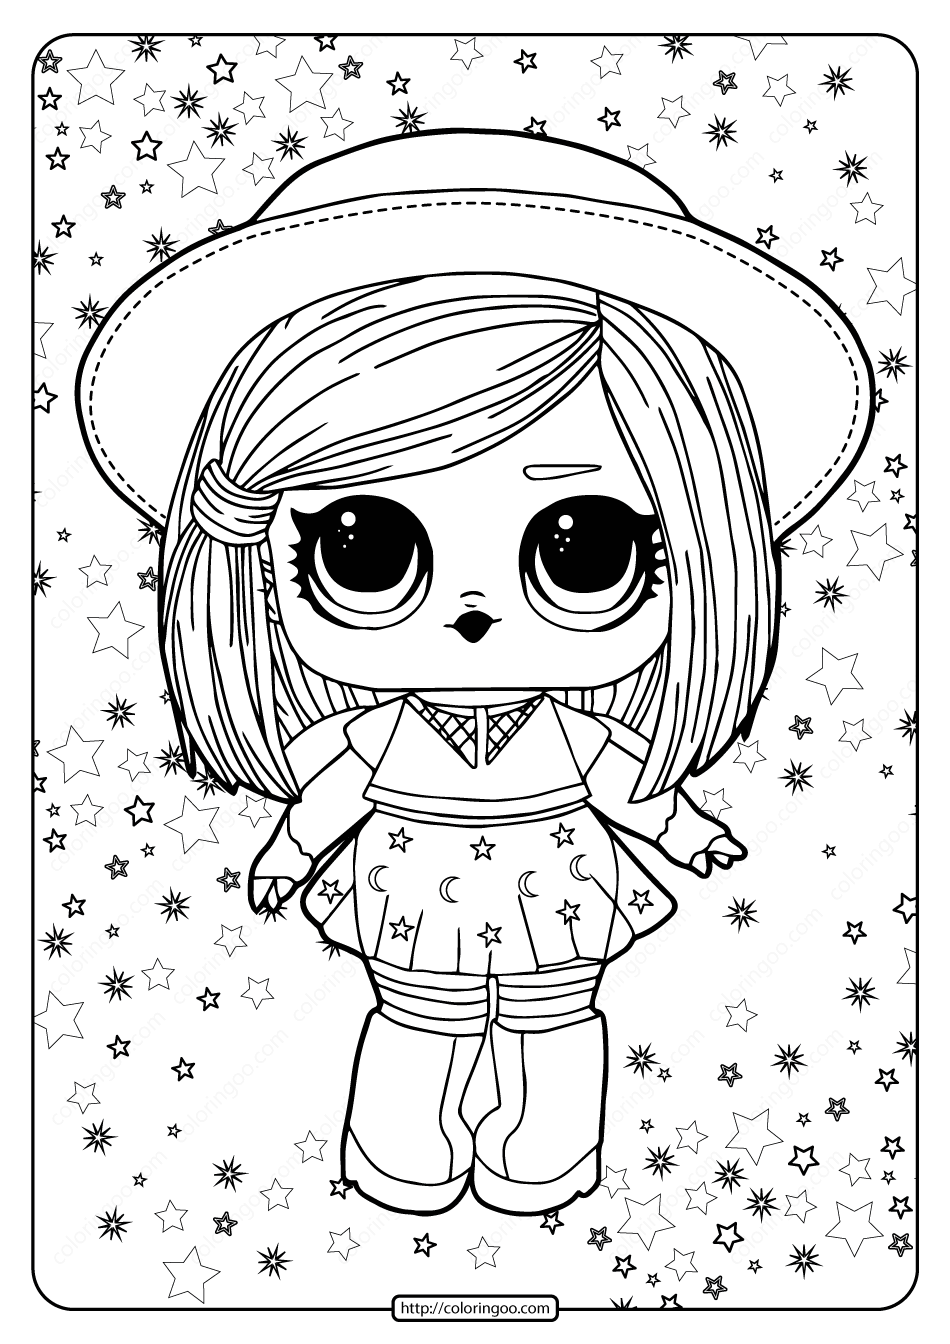 Lol Surprise Hairgoals Witchay Babay Coloring Page In 2020 Free Kids Coloring Pages Cool Coloring Pages Cartoon Coloring Pages